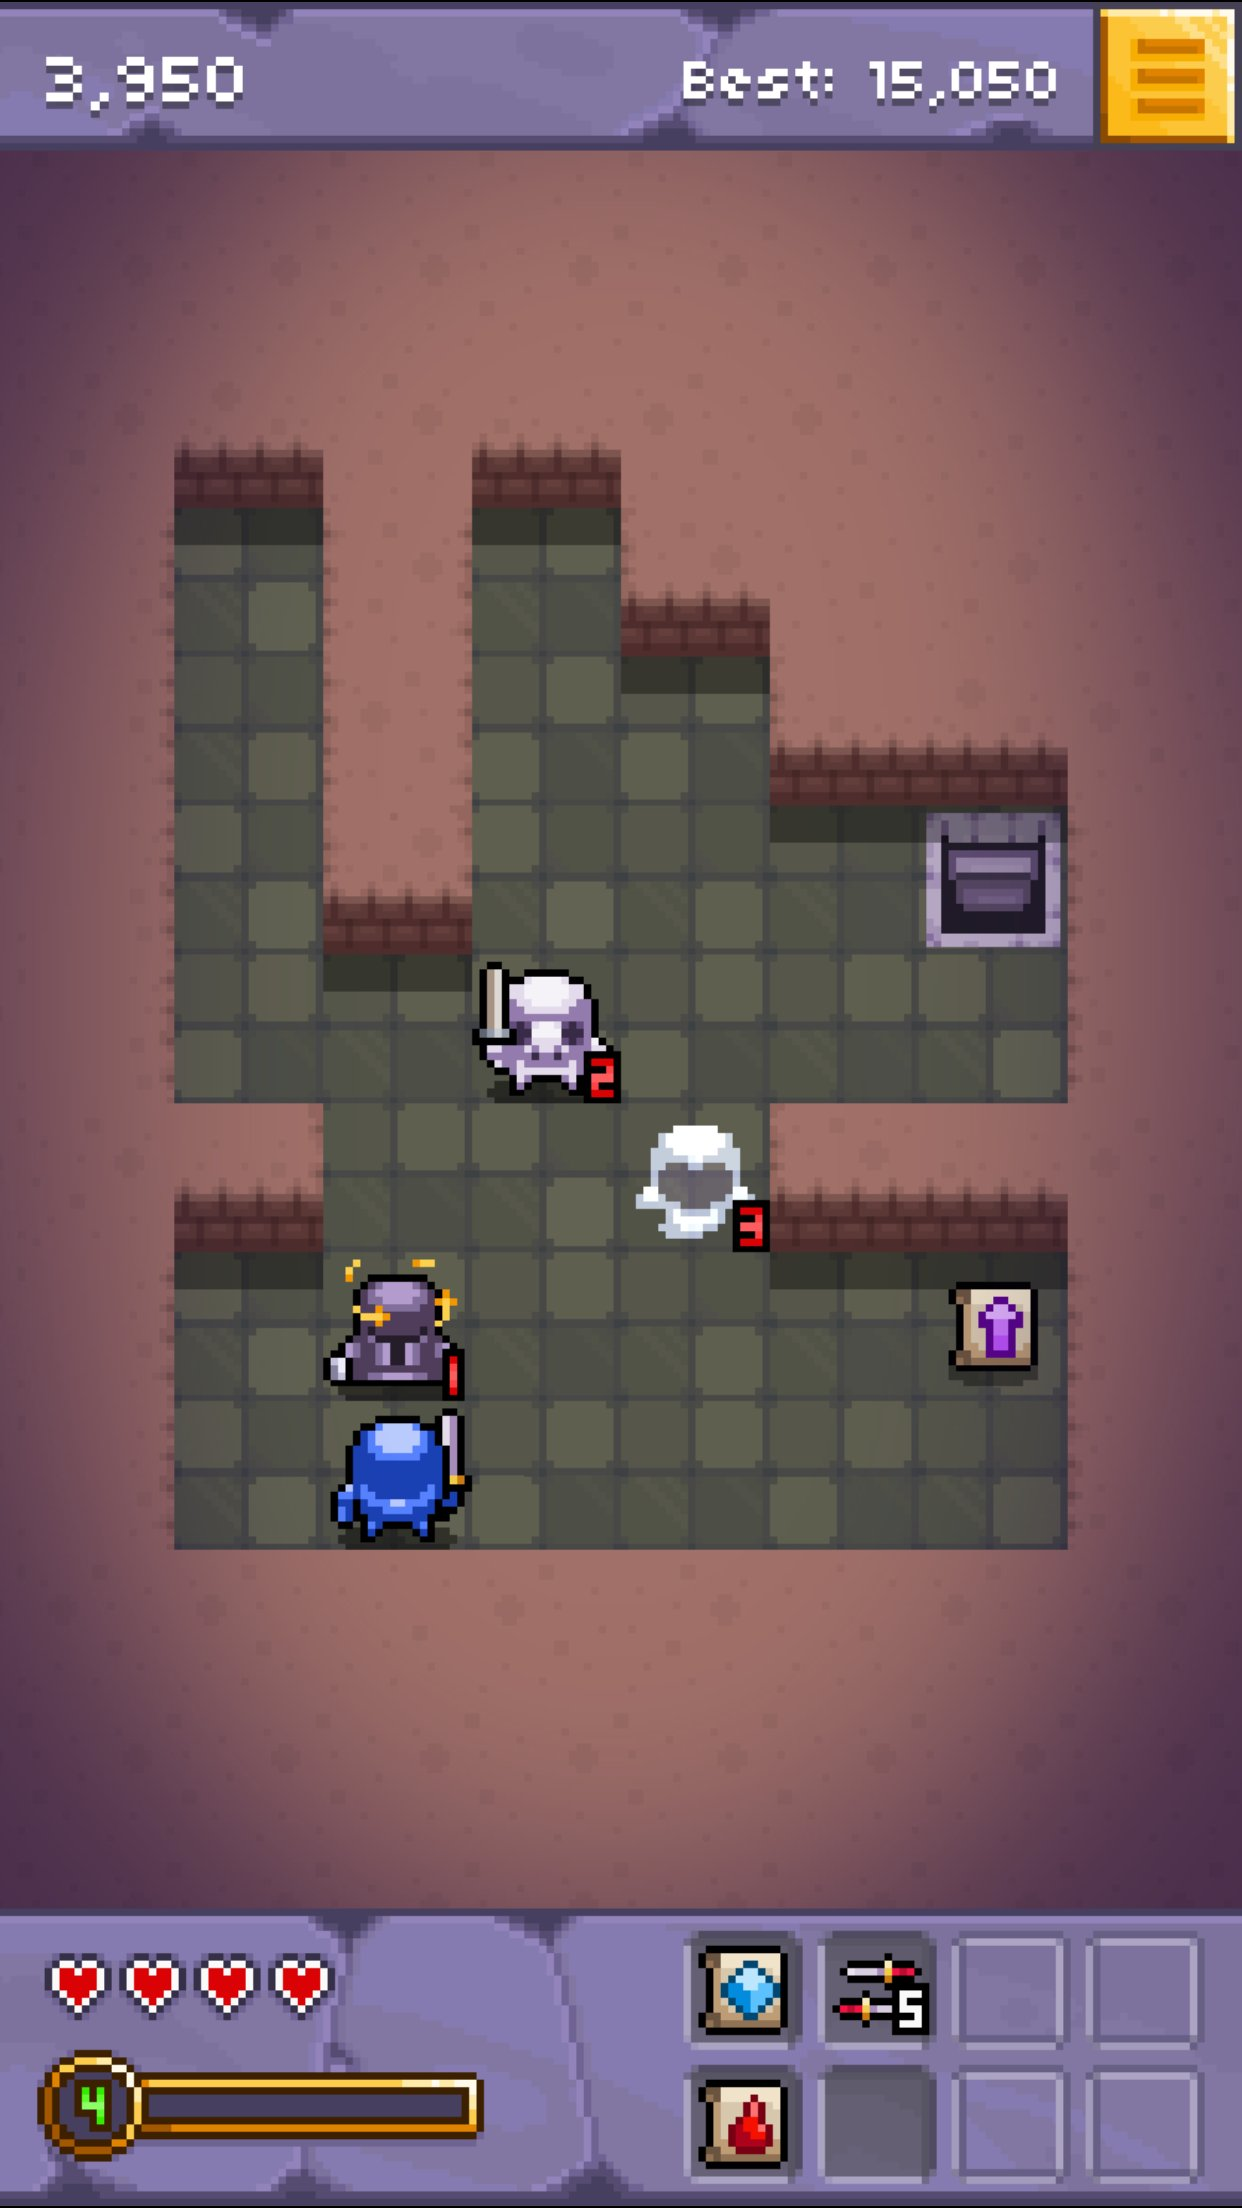 'Tiny Rogue' Review - A Solid Pick Up and Play Roguelike